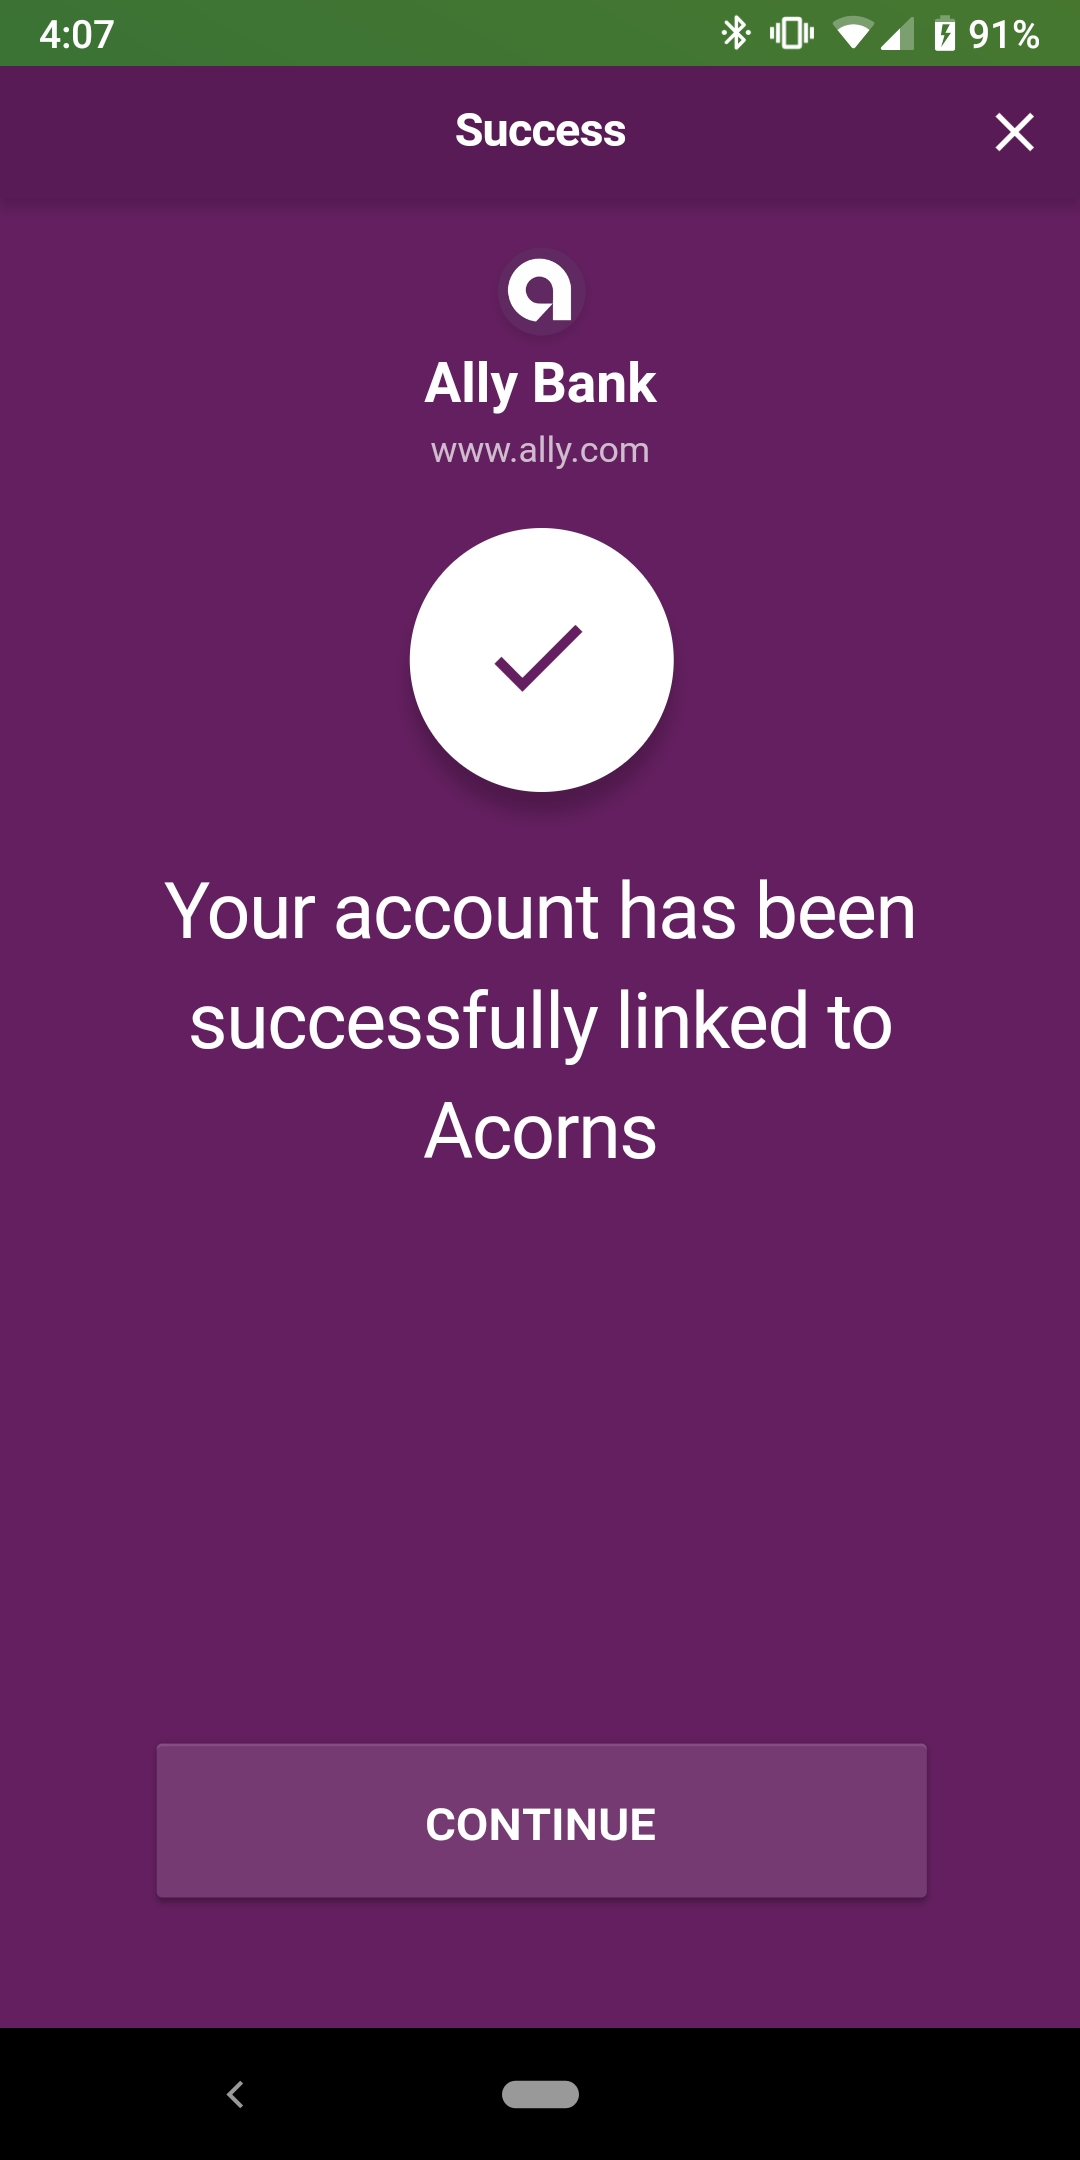 Acorn's success screen on their mobile app once users link their bank